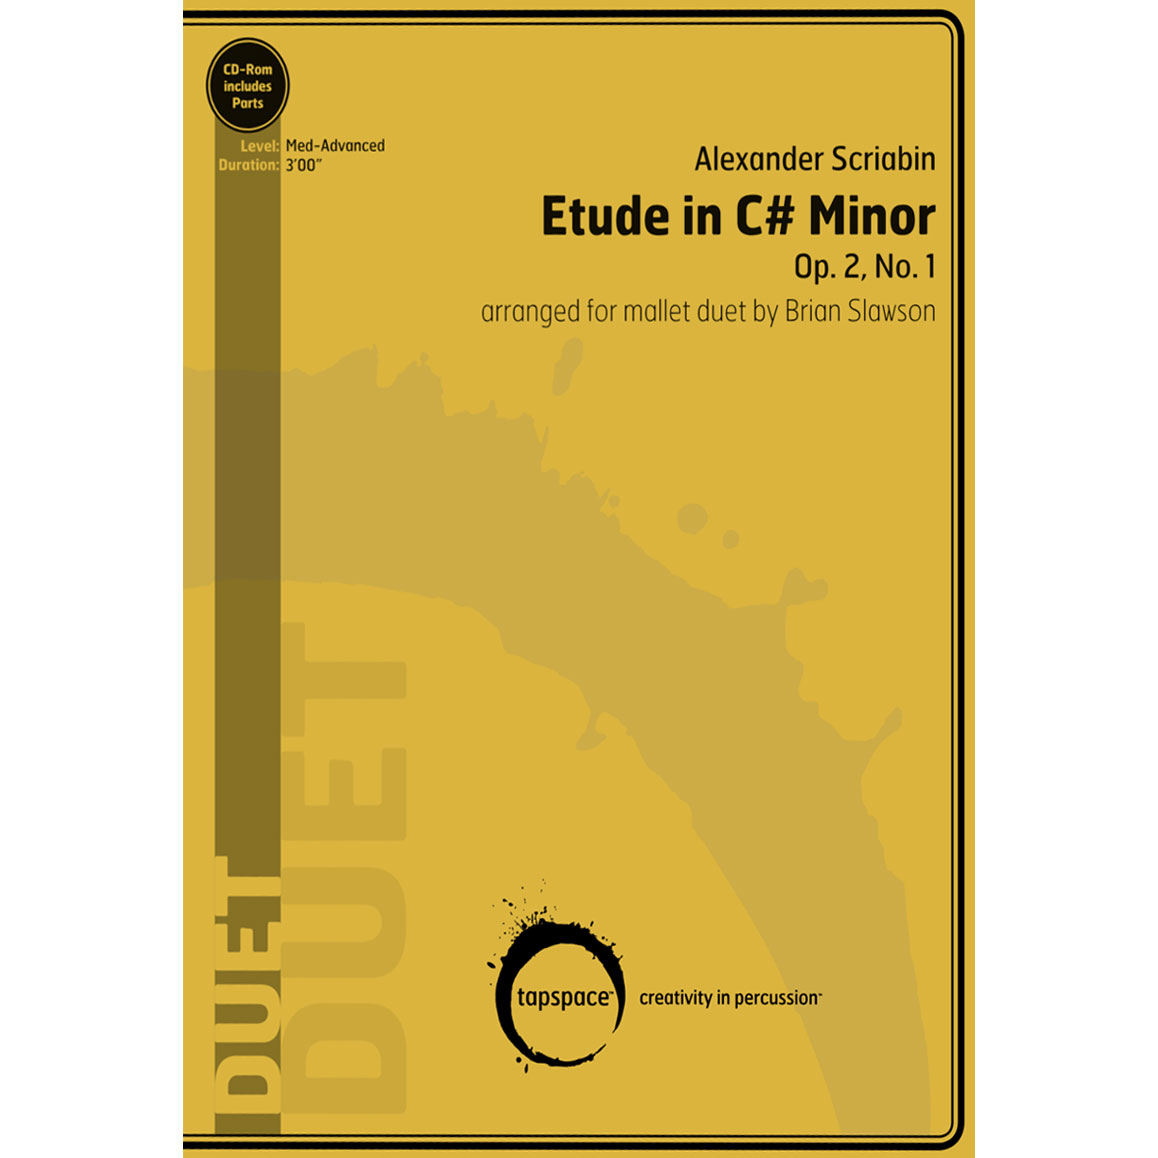 Etude in C# Minor by Alexander Scriabin arr. Brian Slawson